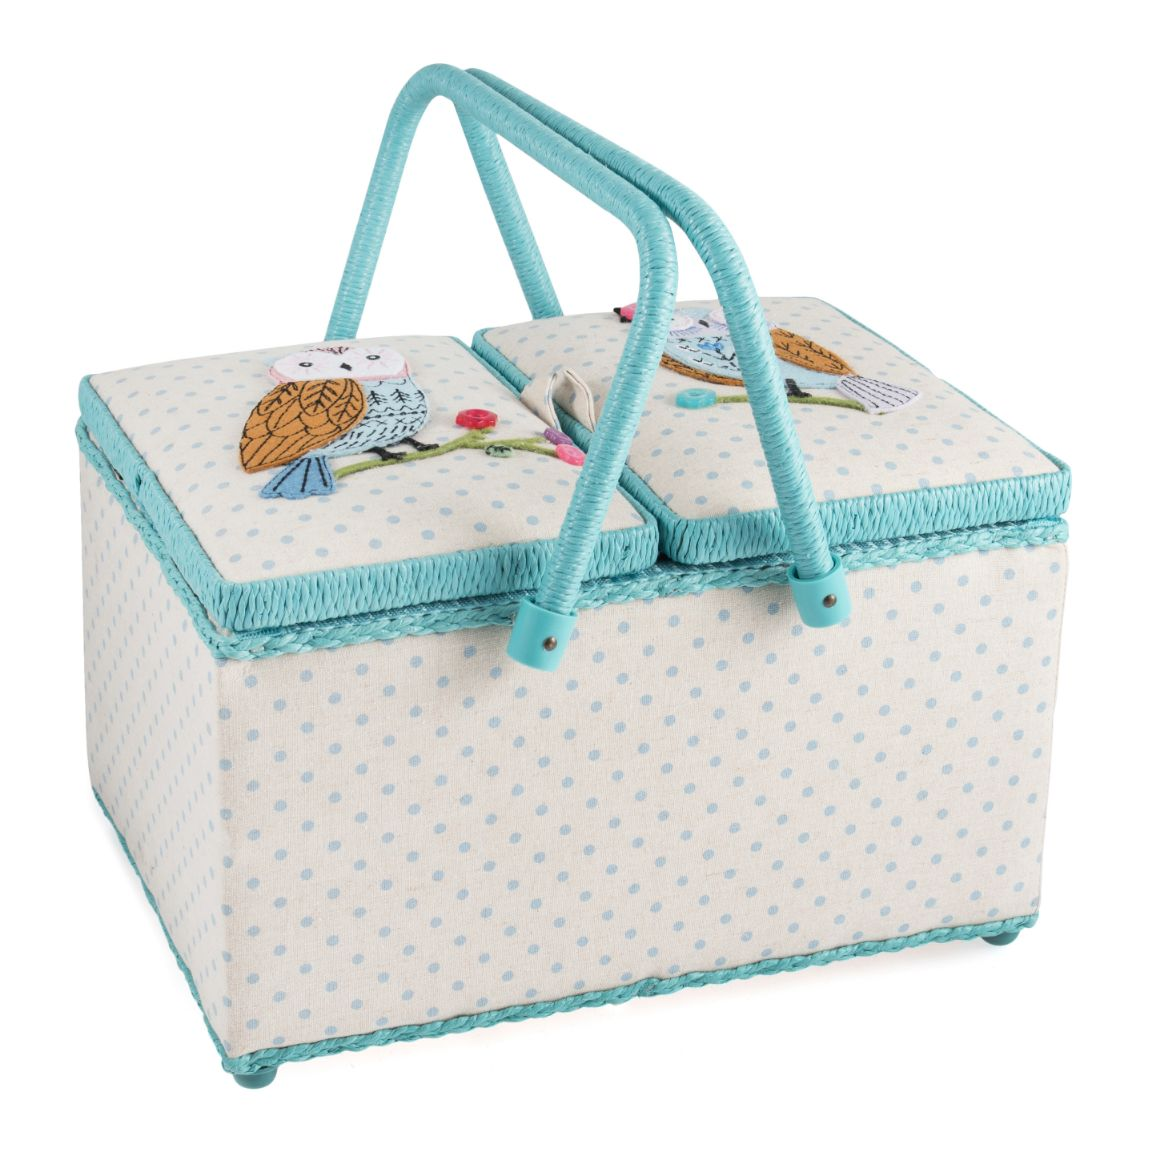 HobbyGift HGTLR_551 | Sewing Box (L) | Twin Lid | Applique Owl Bird Print Sewing Box